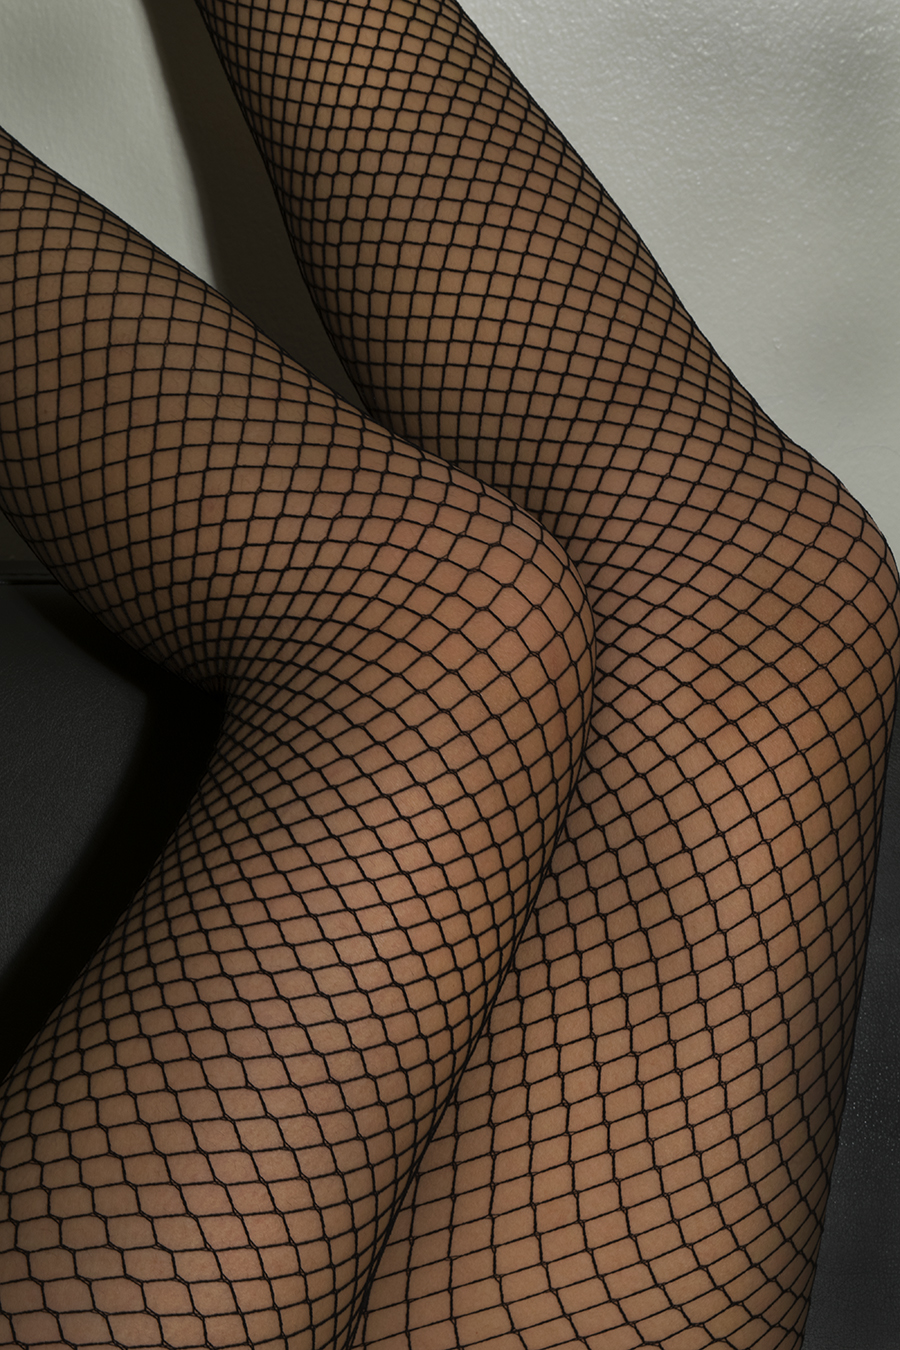 Karen_Liao_still_life_photography_fishnet_black_net